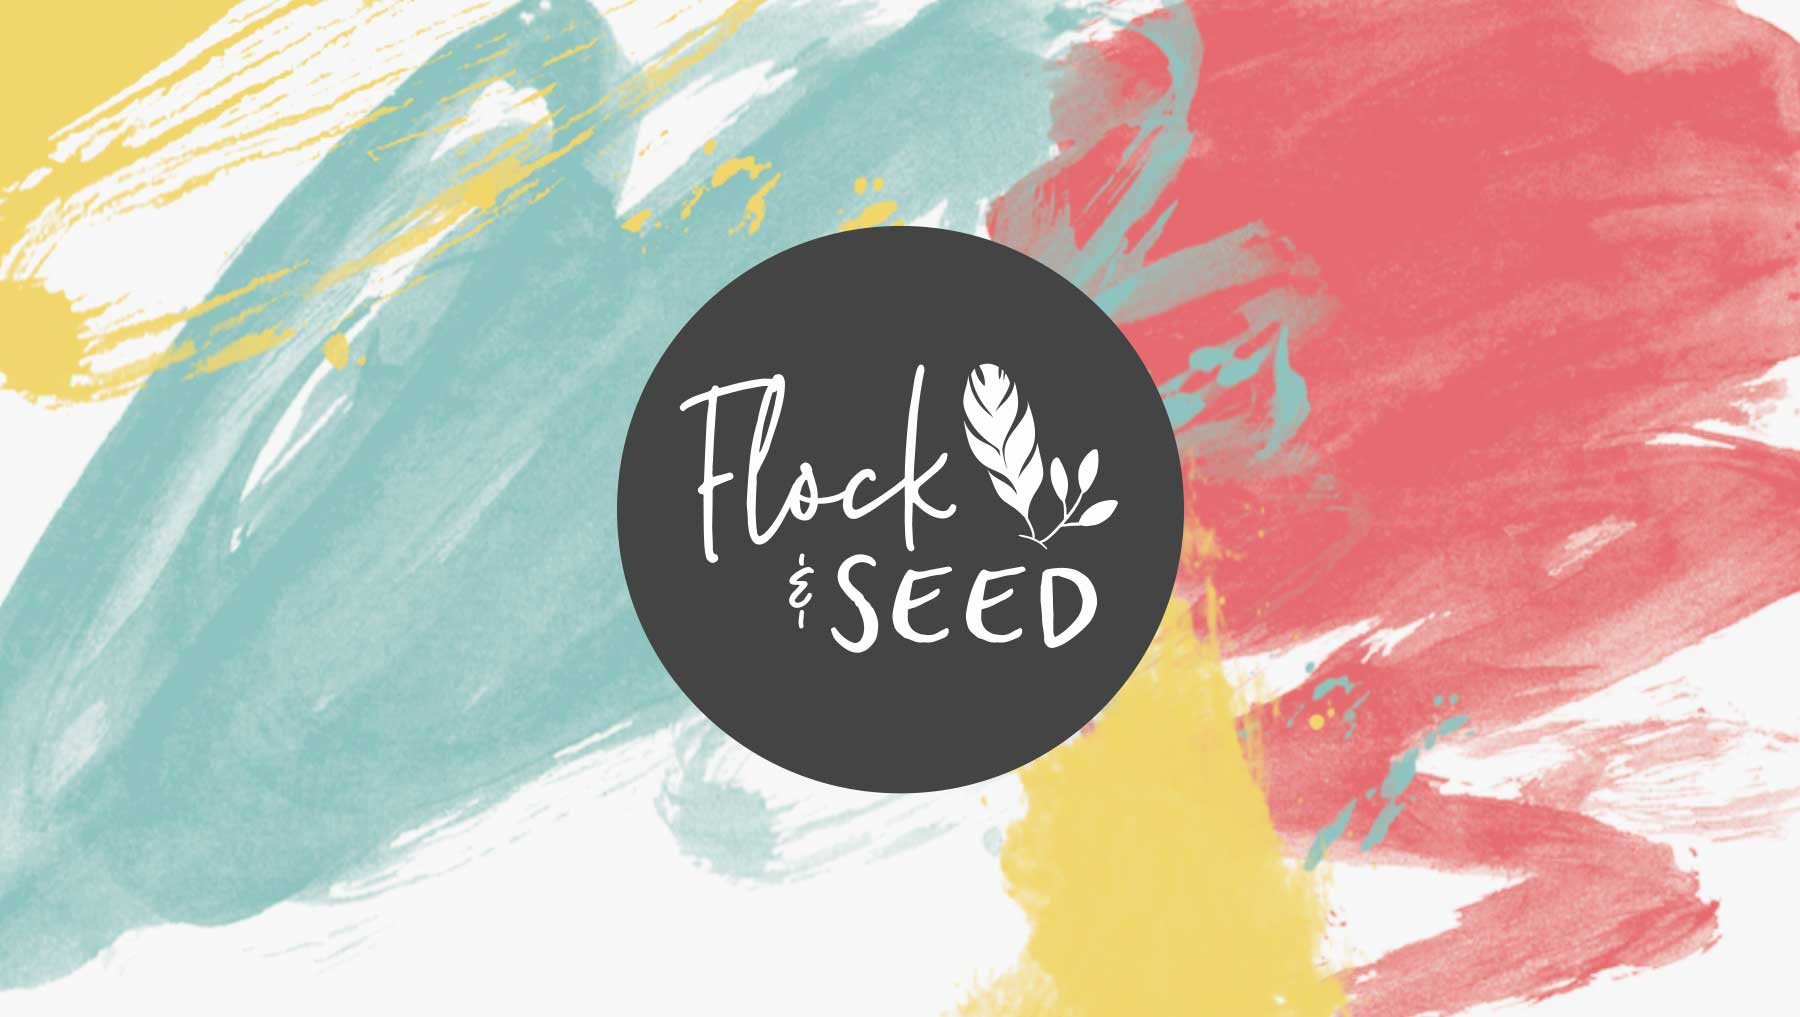 Flock & Seed logo design on turqoise red yellow white watercolor brush background